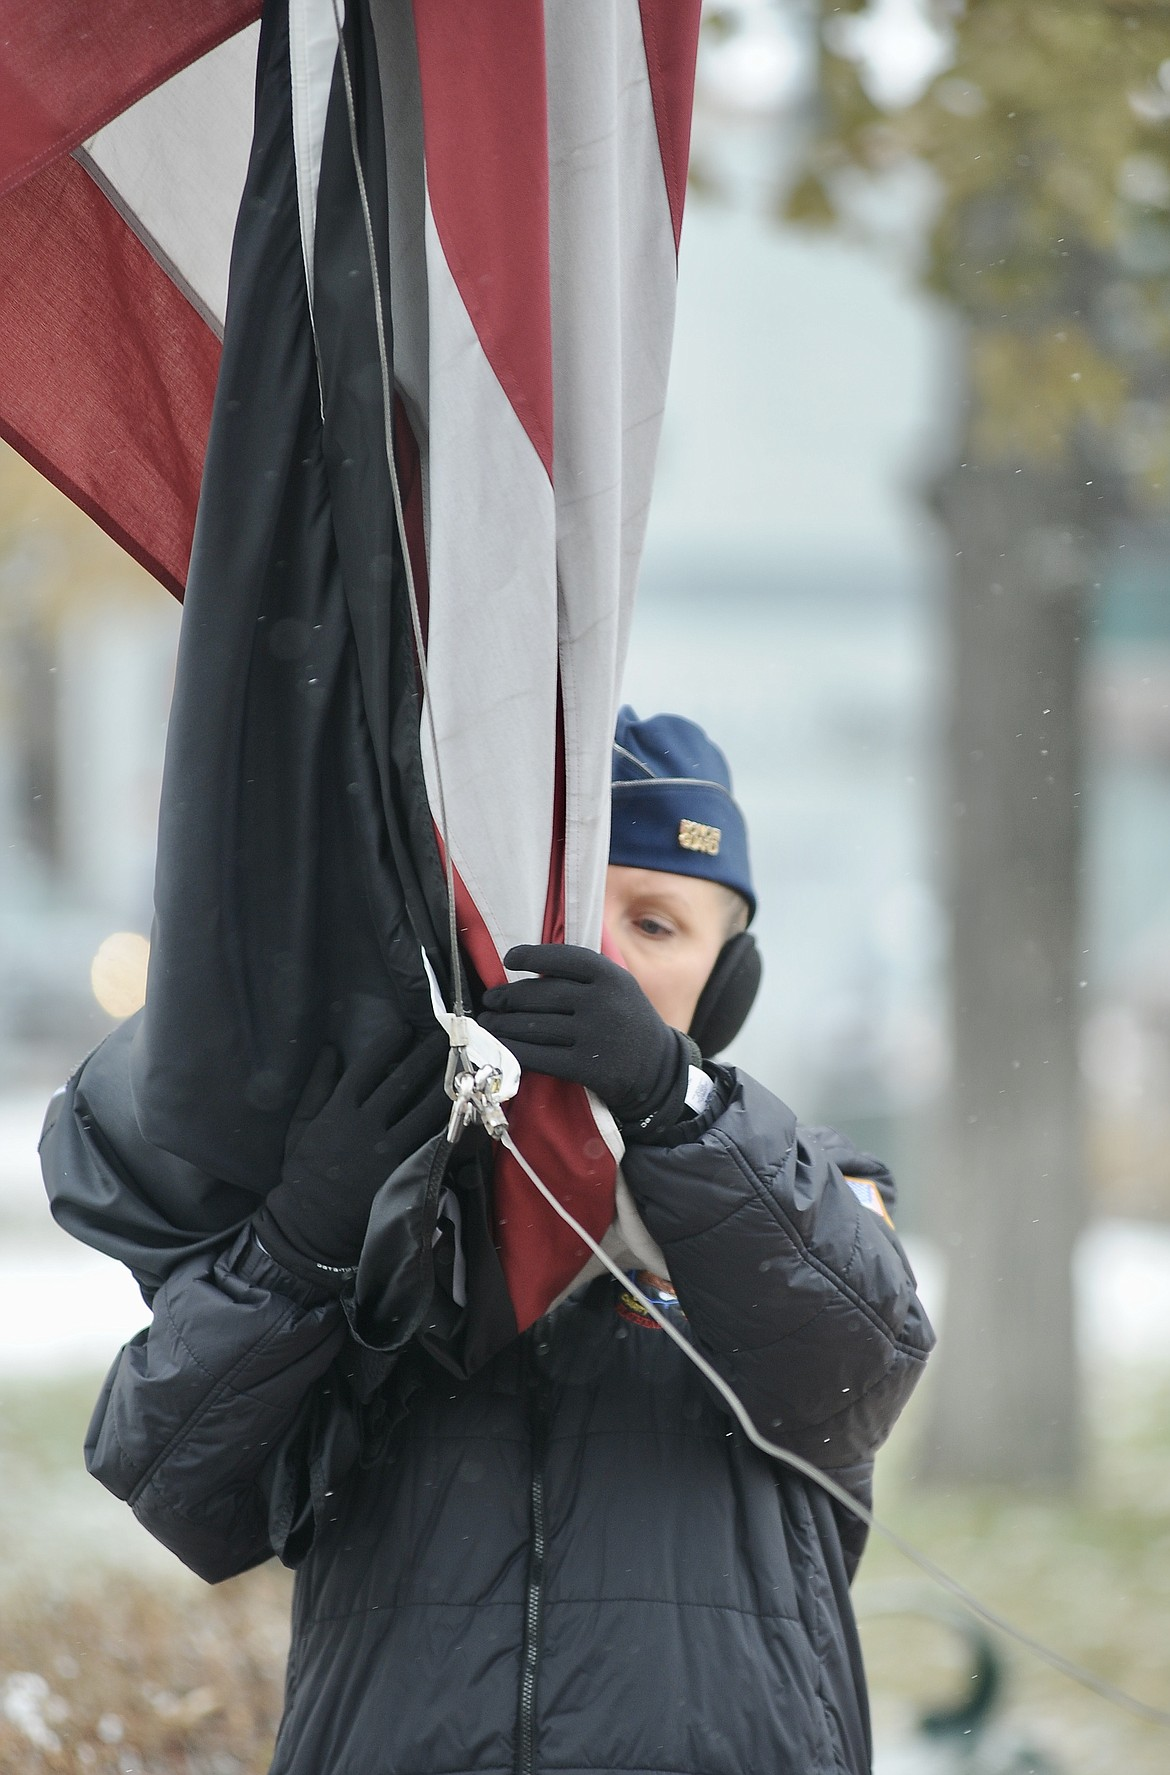 The United Veterans of the Flathead Valley hosted their annual Veterans Day ceremony Wednesday, Nov. 11, at Depot Park in Kalispell. (Matt Baldwin/Daily Inter Lake)